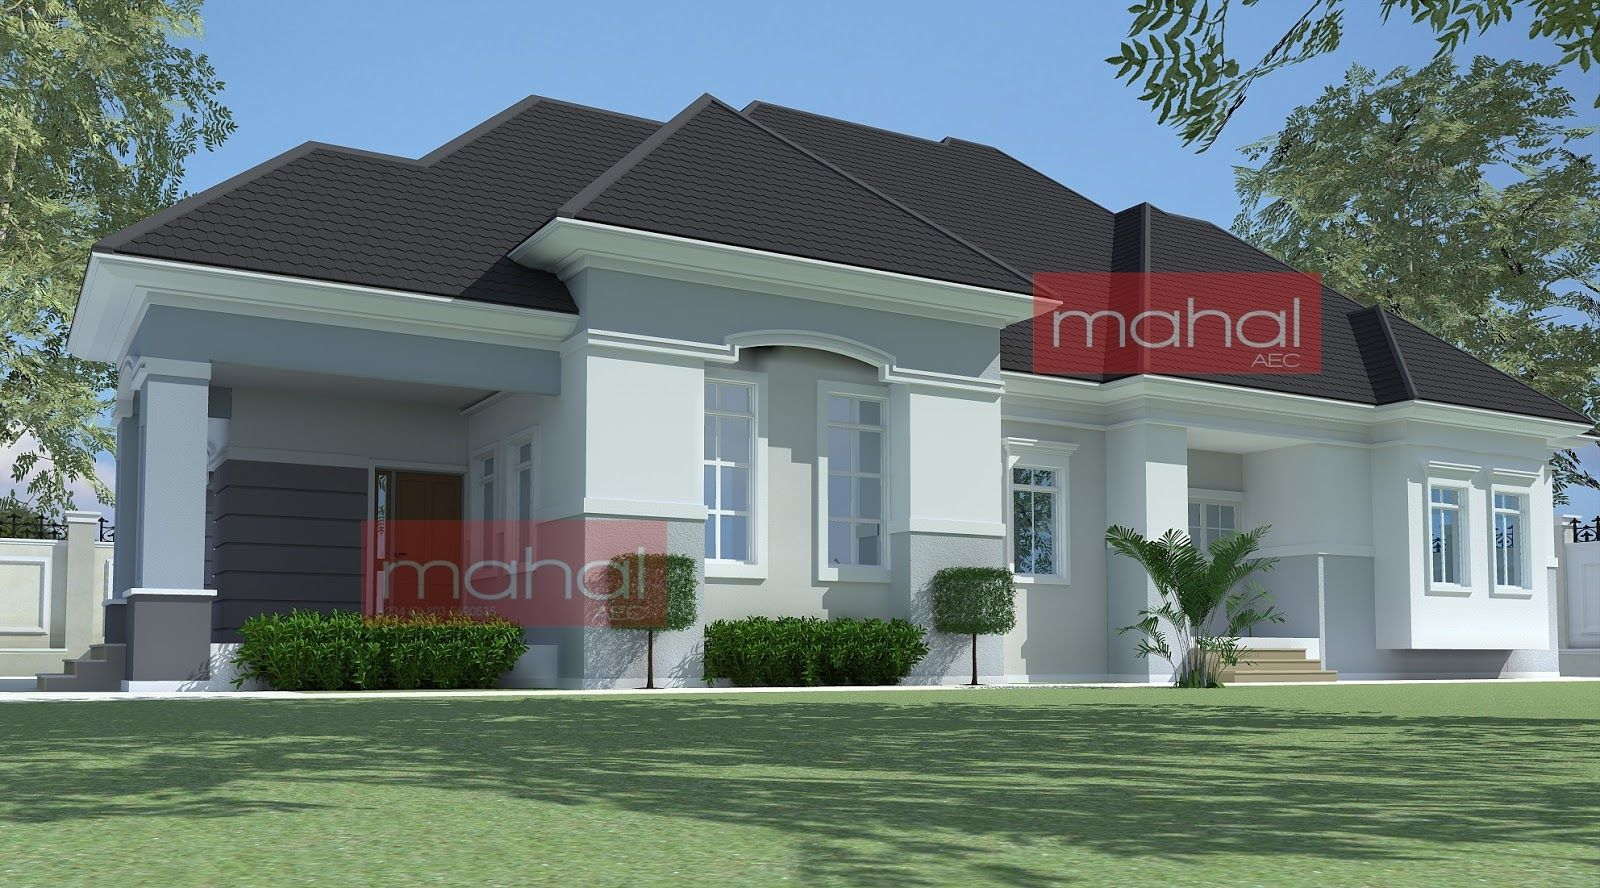 4 bedroom bungalow plan in nigeria 4 bedroom bungalow for Modern bungalow plans